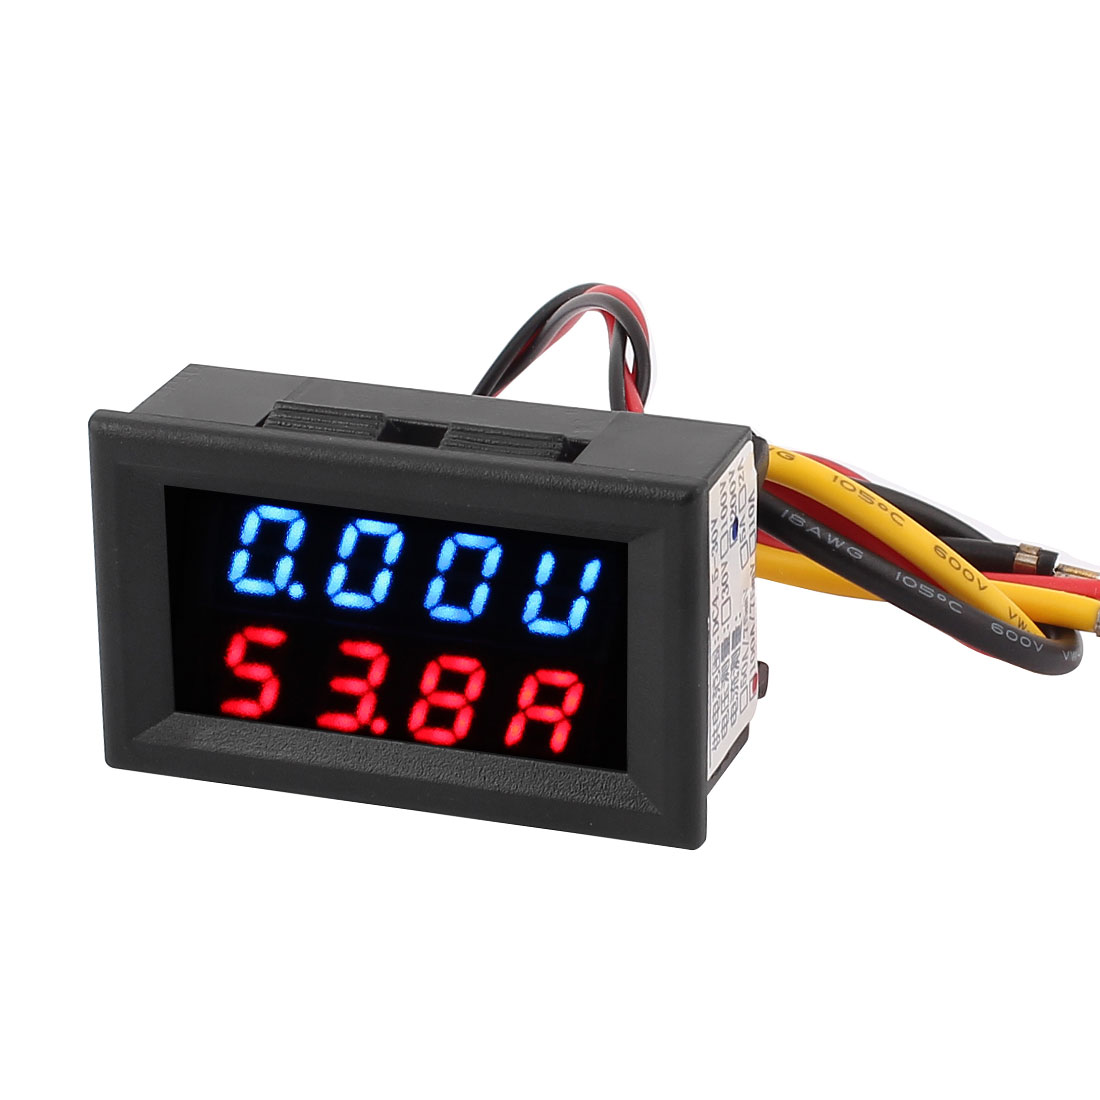 DC 0-200V 0-100A Blue Red LED Dual Digital Panel Voltmeter Ammeter Meter Gauge